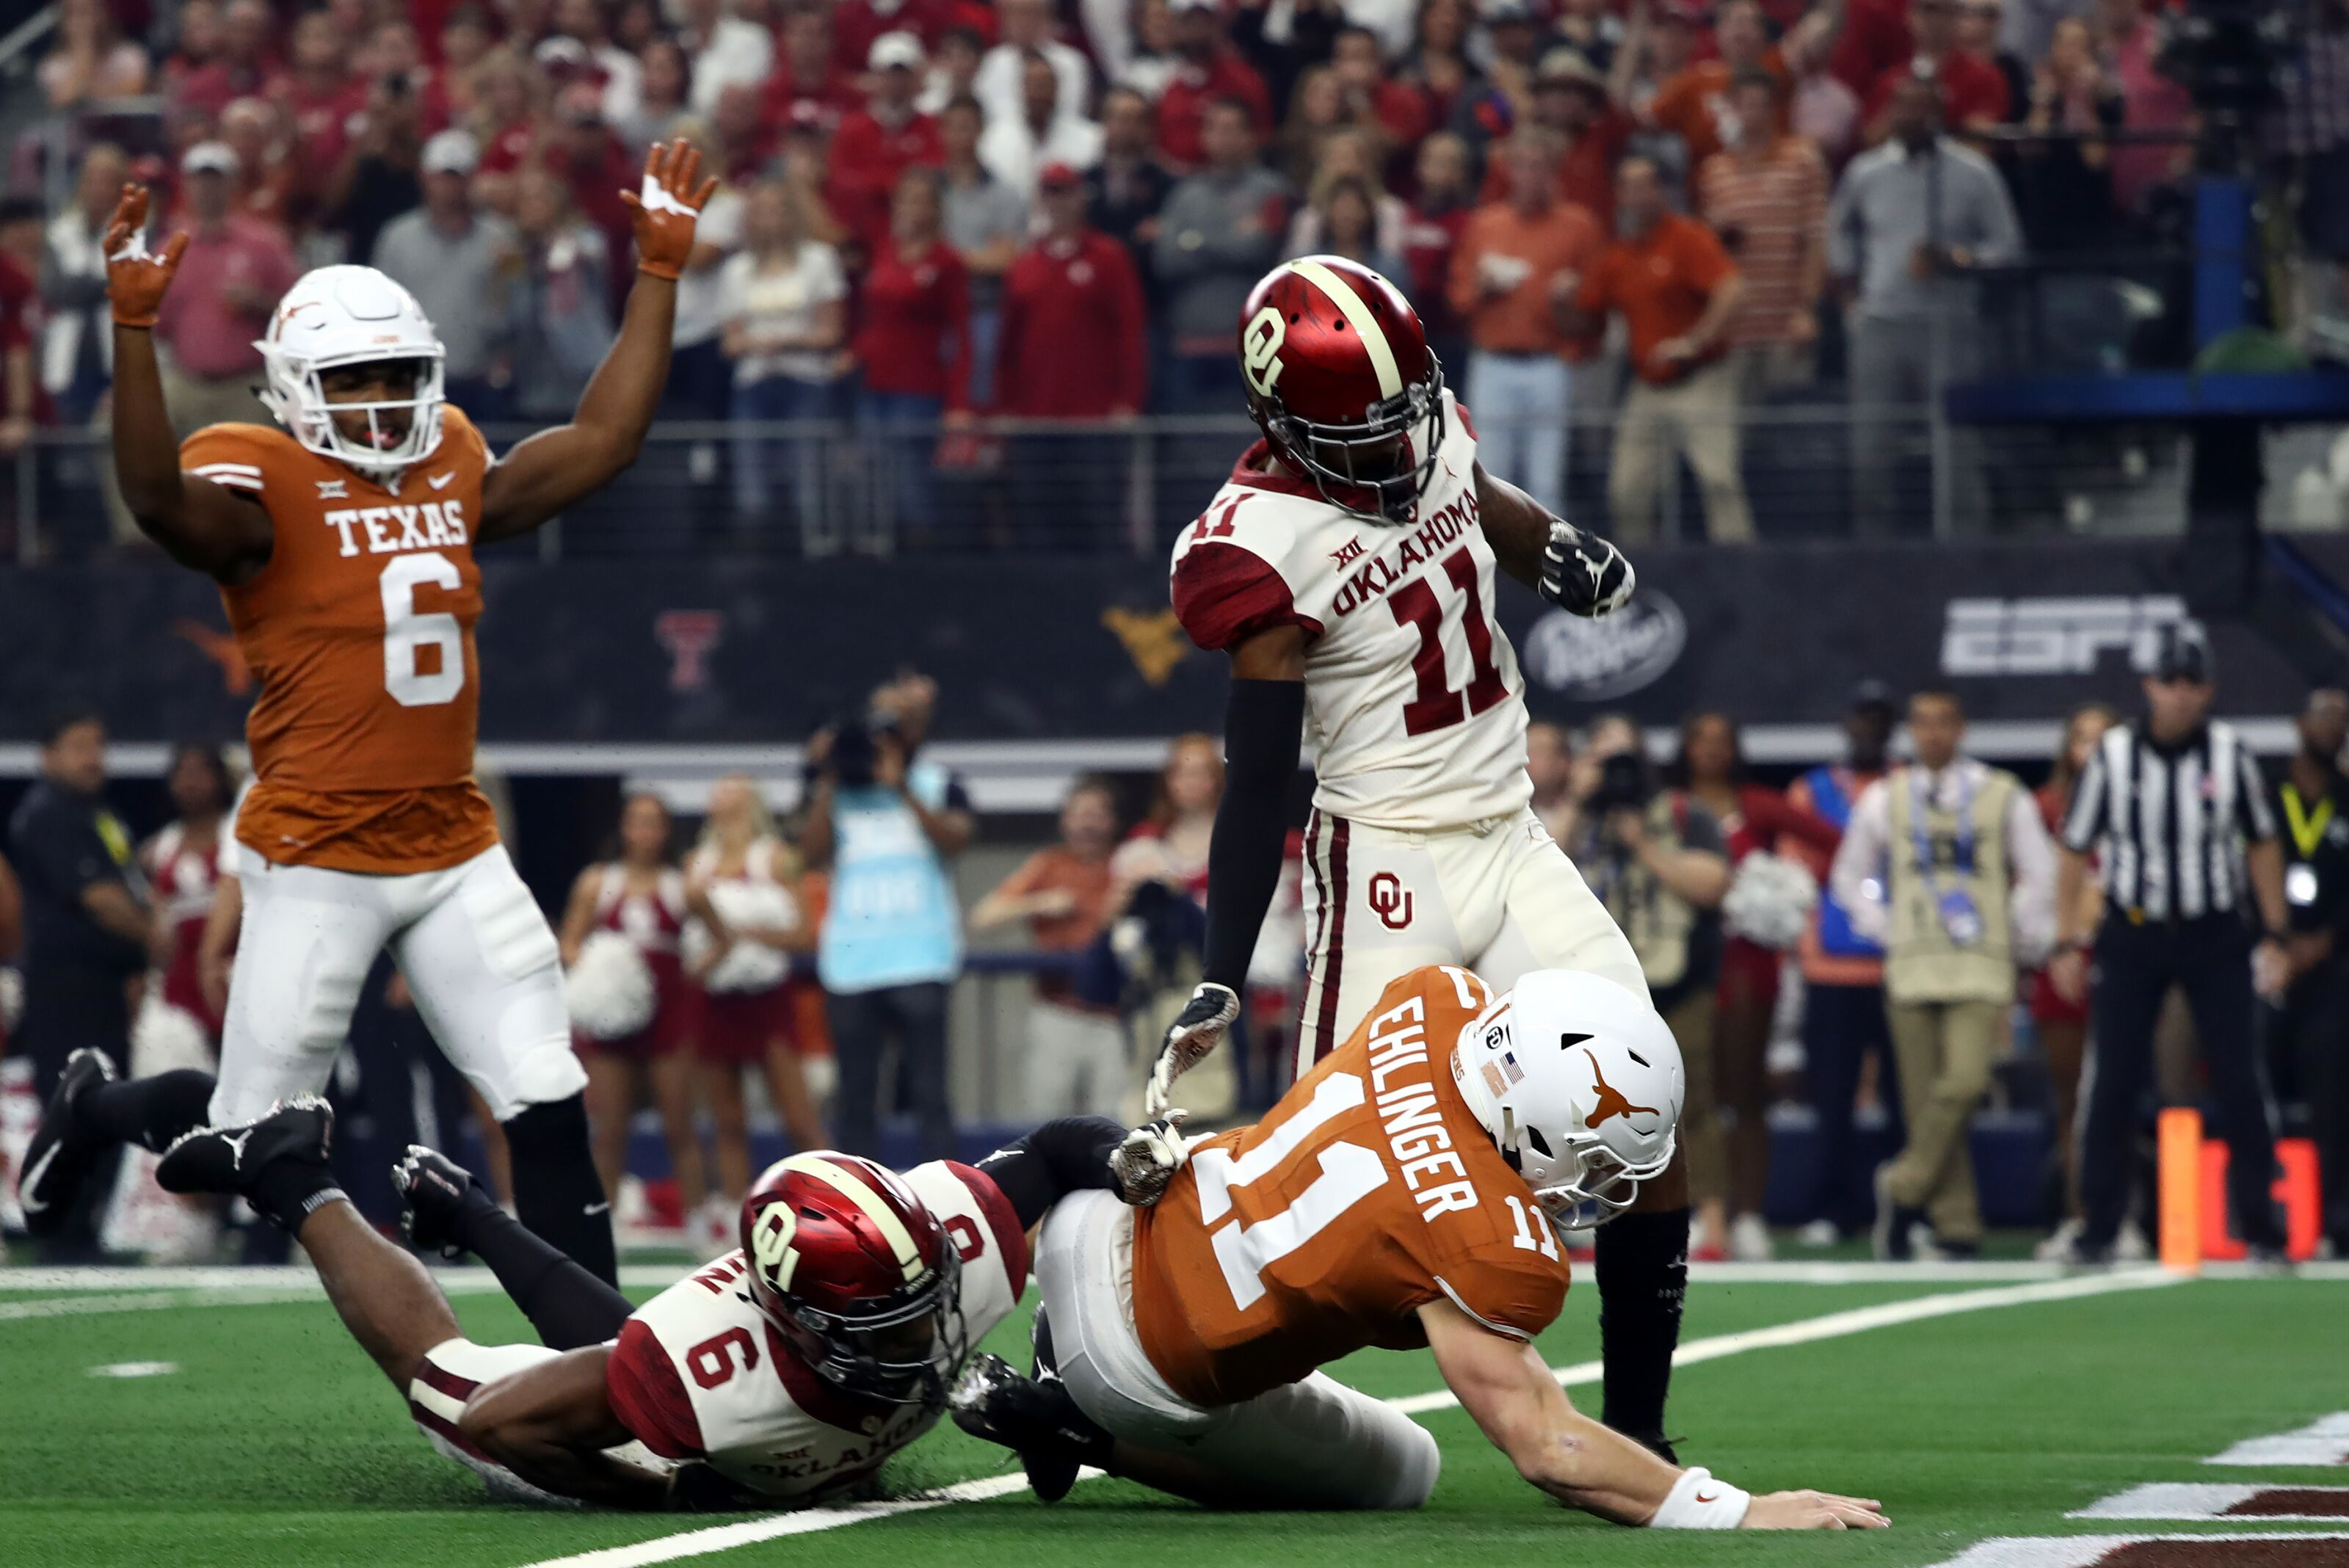 Texas Football: 5 things we learned from Big 12 Title Game ...